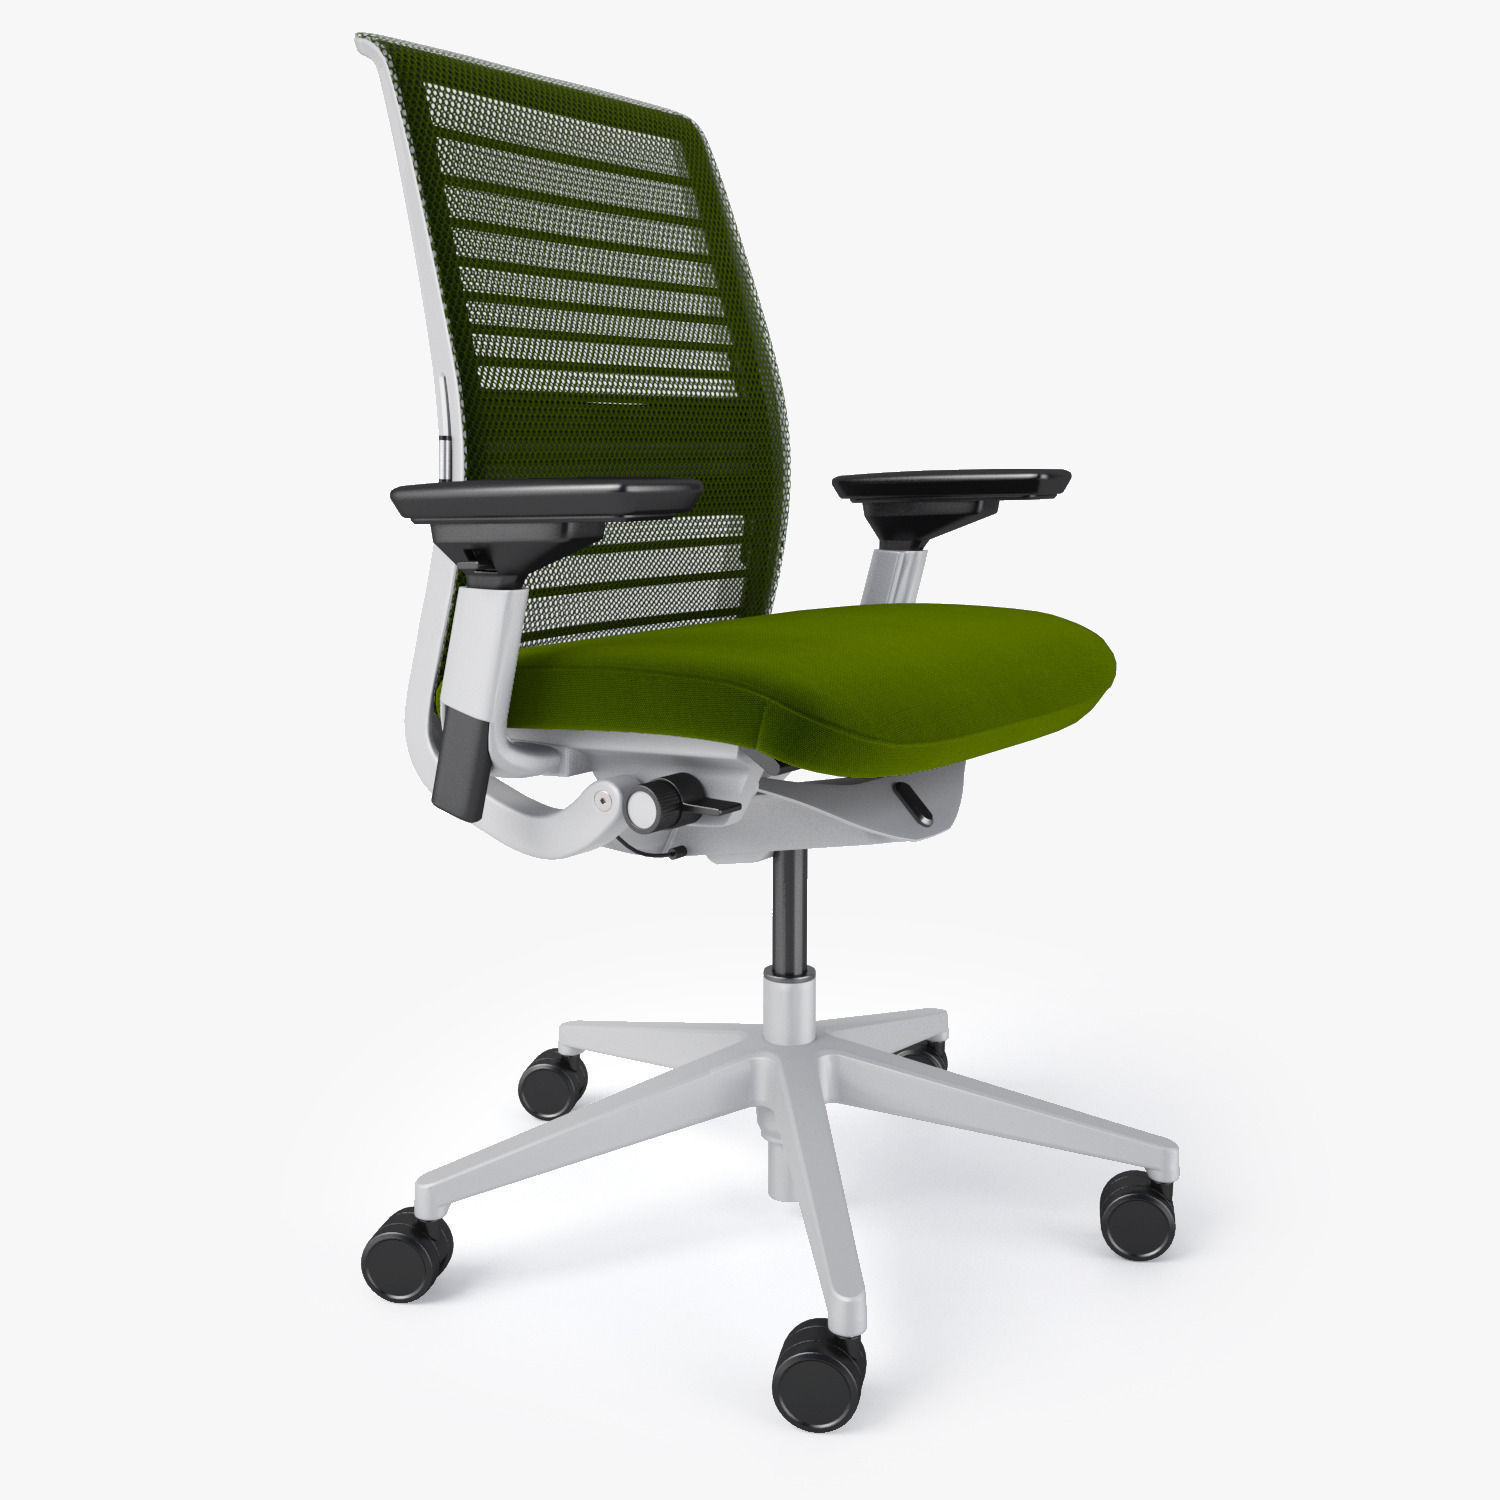 Steelcase Chairs Steelcase Think Office Chair 3d Model Max Obj Fbx Mtl